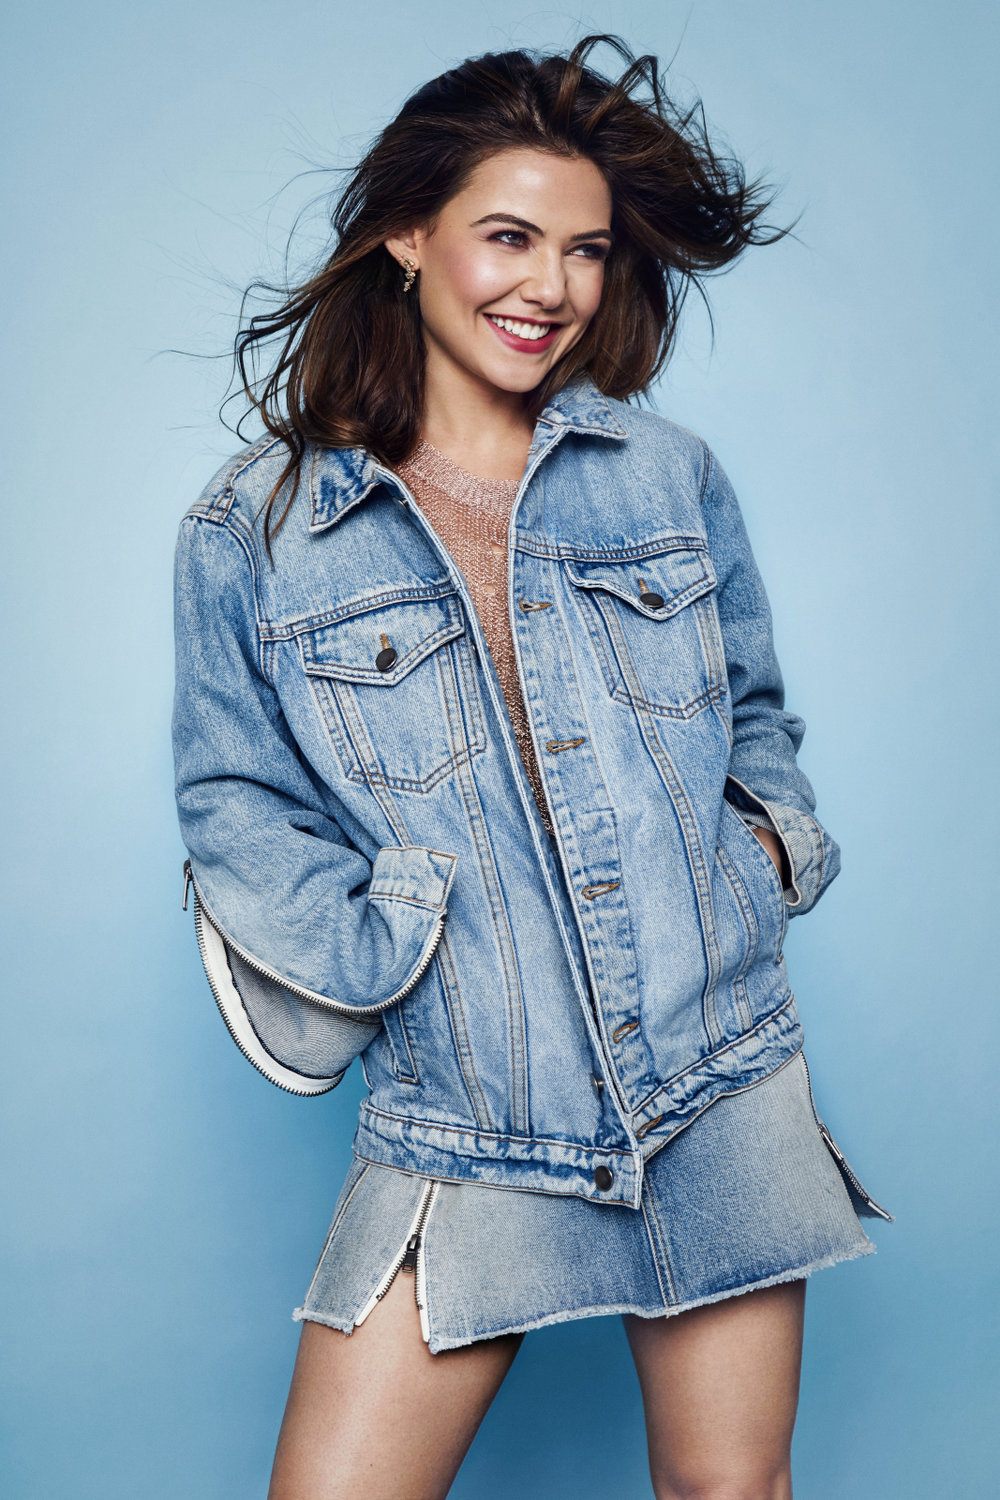 Discussion on this topic: Jasmine Richards, danielle-campbell/